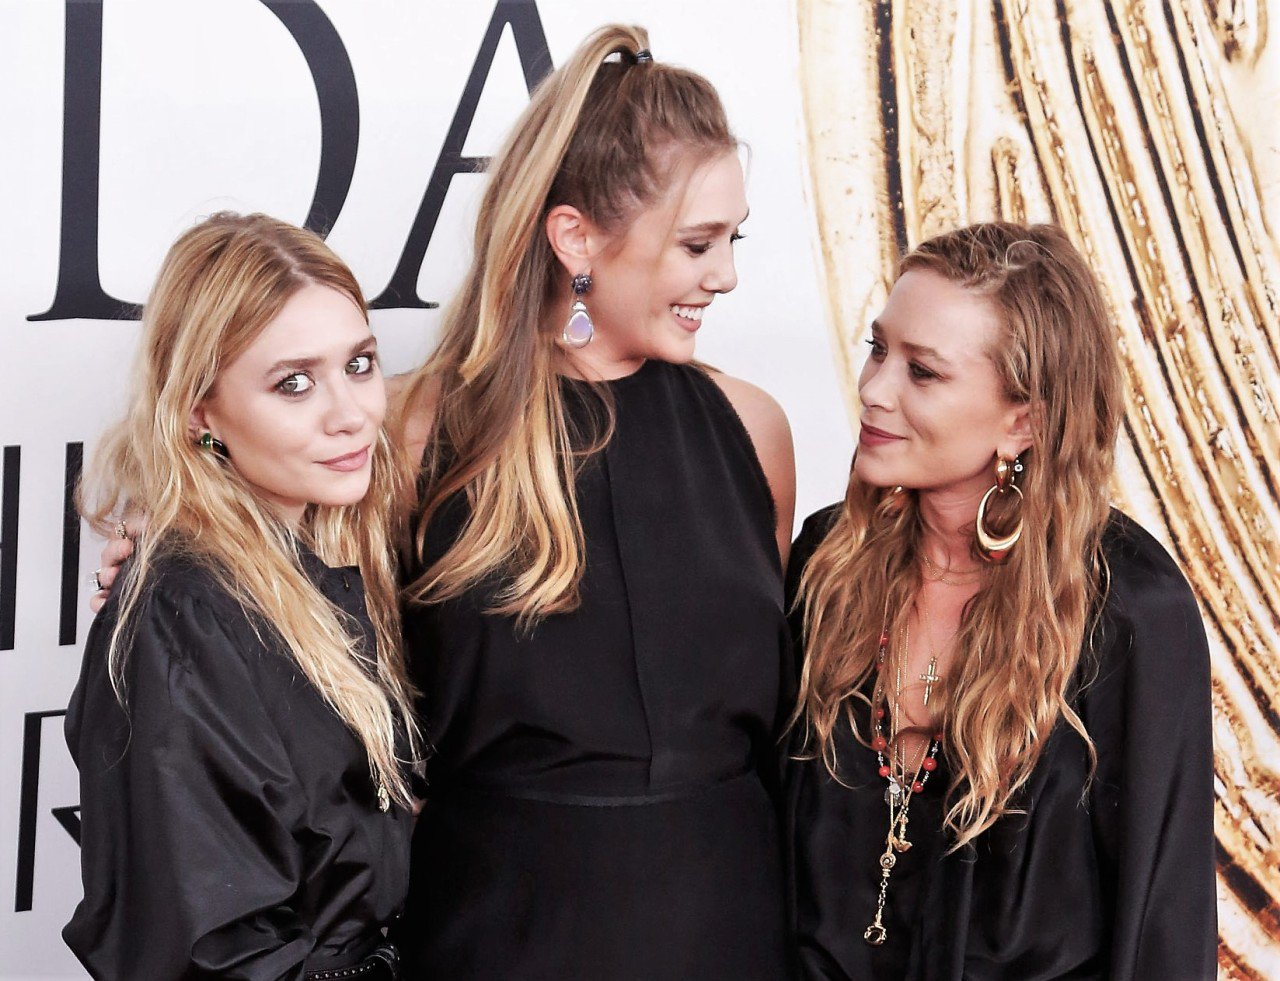 Happy birthday to my lovely Mary-Kate and Ashley Olsen!